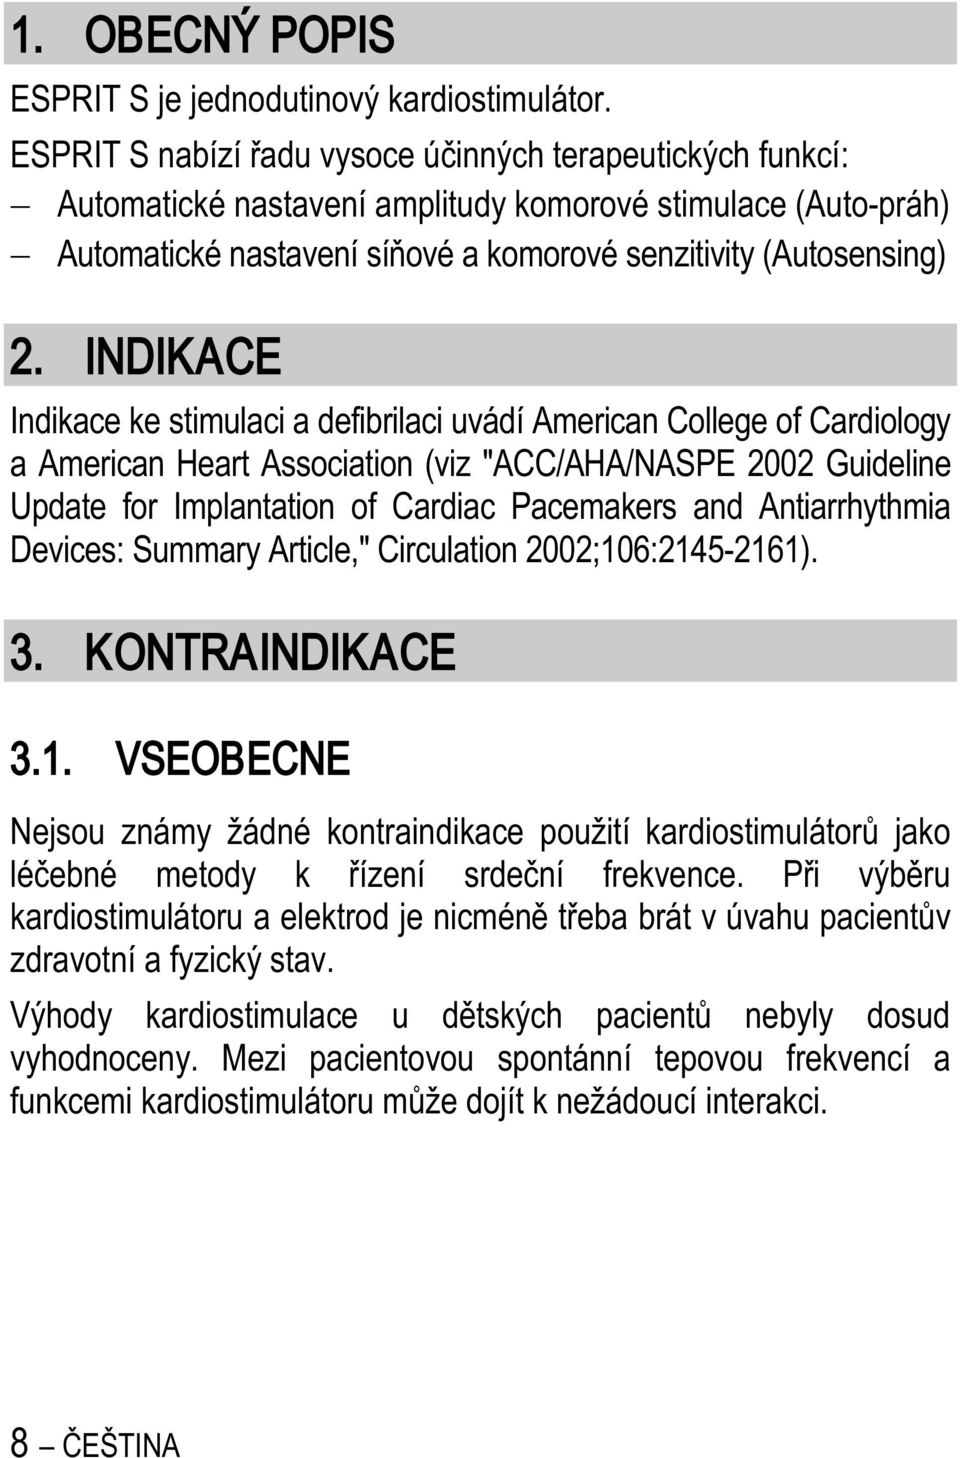 "INDIKACE Indikace ke stimulaci a defibrilaci uvádí American College of Cardiology a American Heart Association (viz ""ACC/AHA/NASPE 2002 Guideline Update for Implantation of Cardiac Pacemakers and"